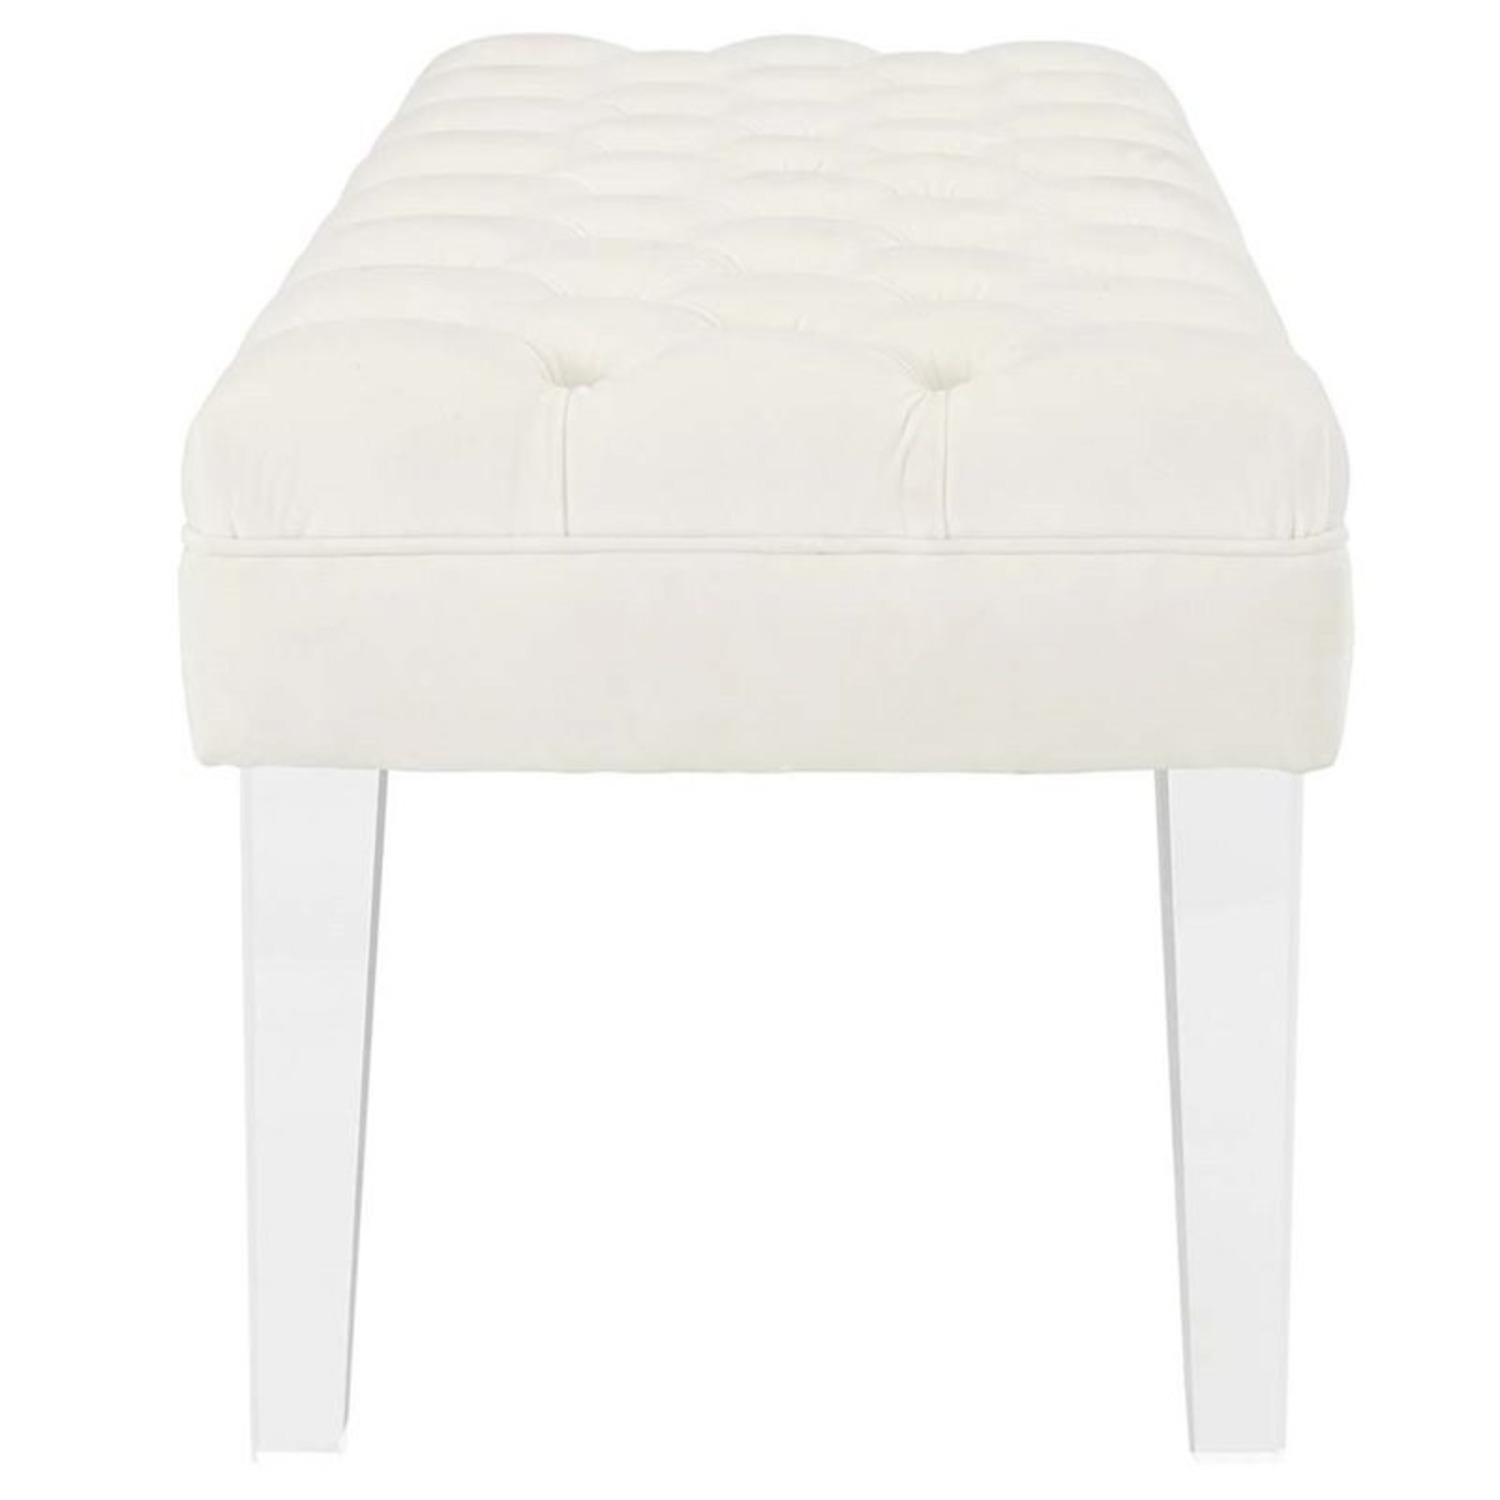 Bench In Ivory Velvet Fabric W/ Clear Acrylic Legs - image-2